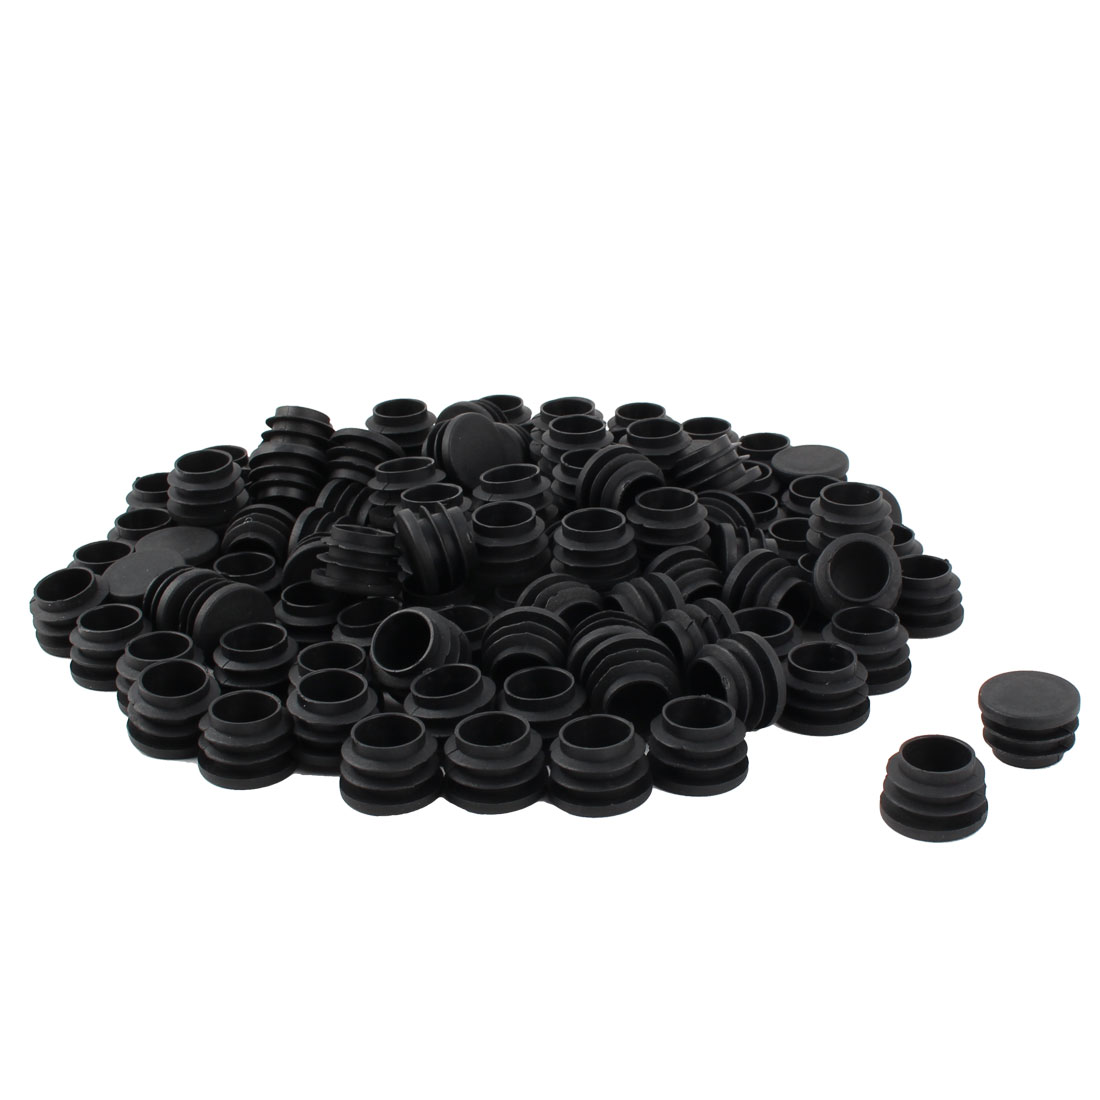 Furniture Table Chair Legs Plastic Flat Base Round Tube Pipe Insert Cap Cover Black 25mm Dia 100pcs